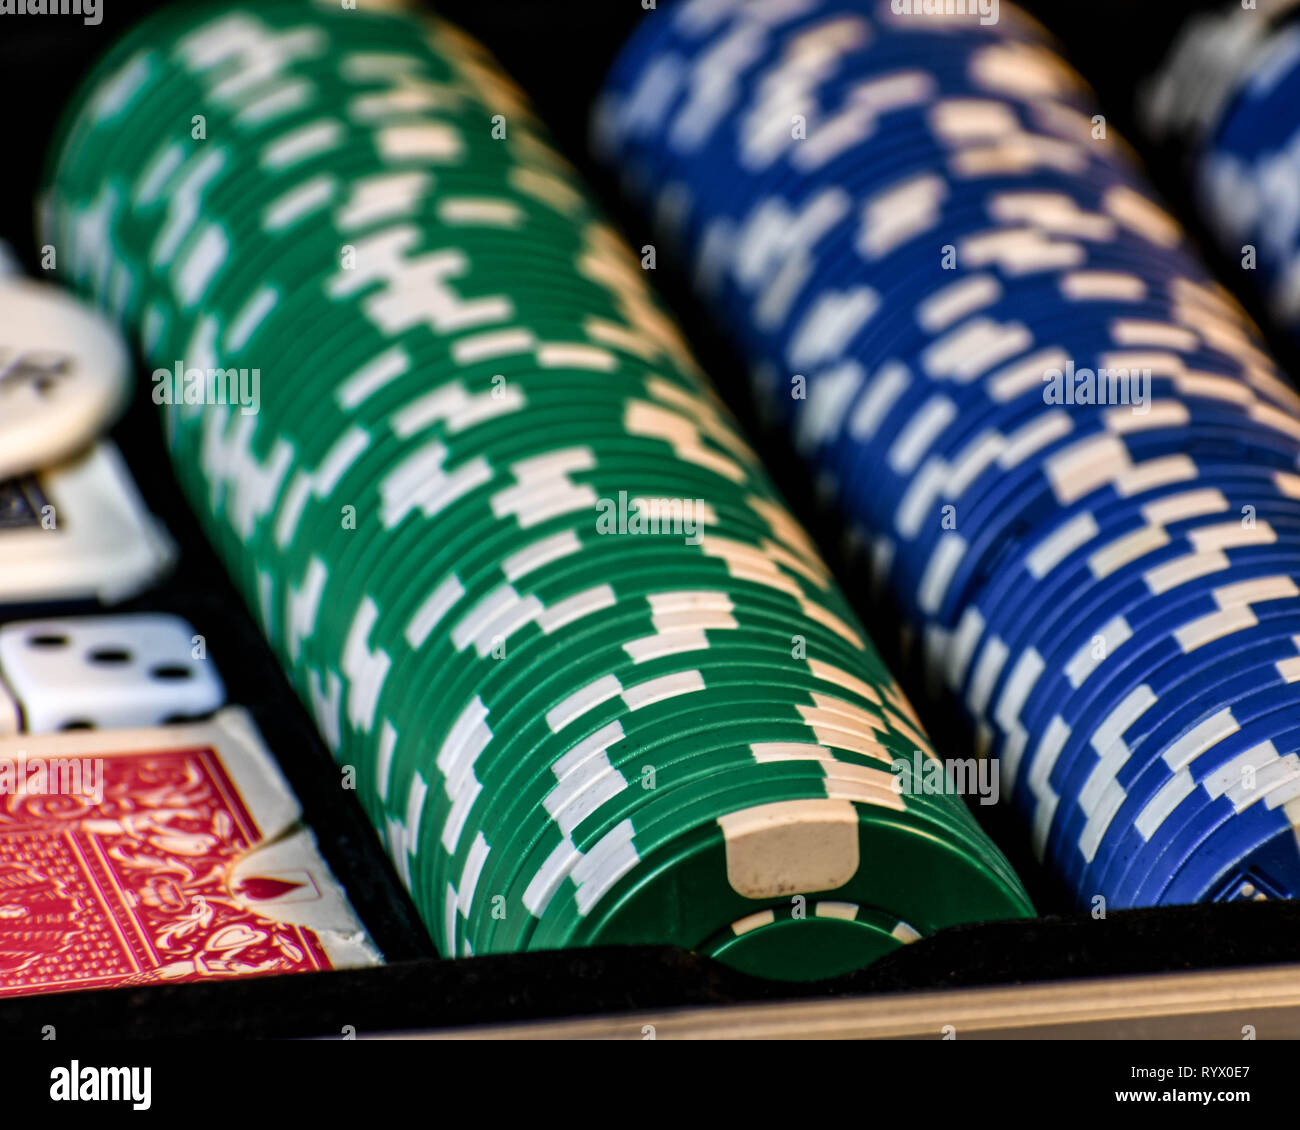 a-poker-scene-with-cards-chips-and-green